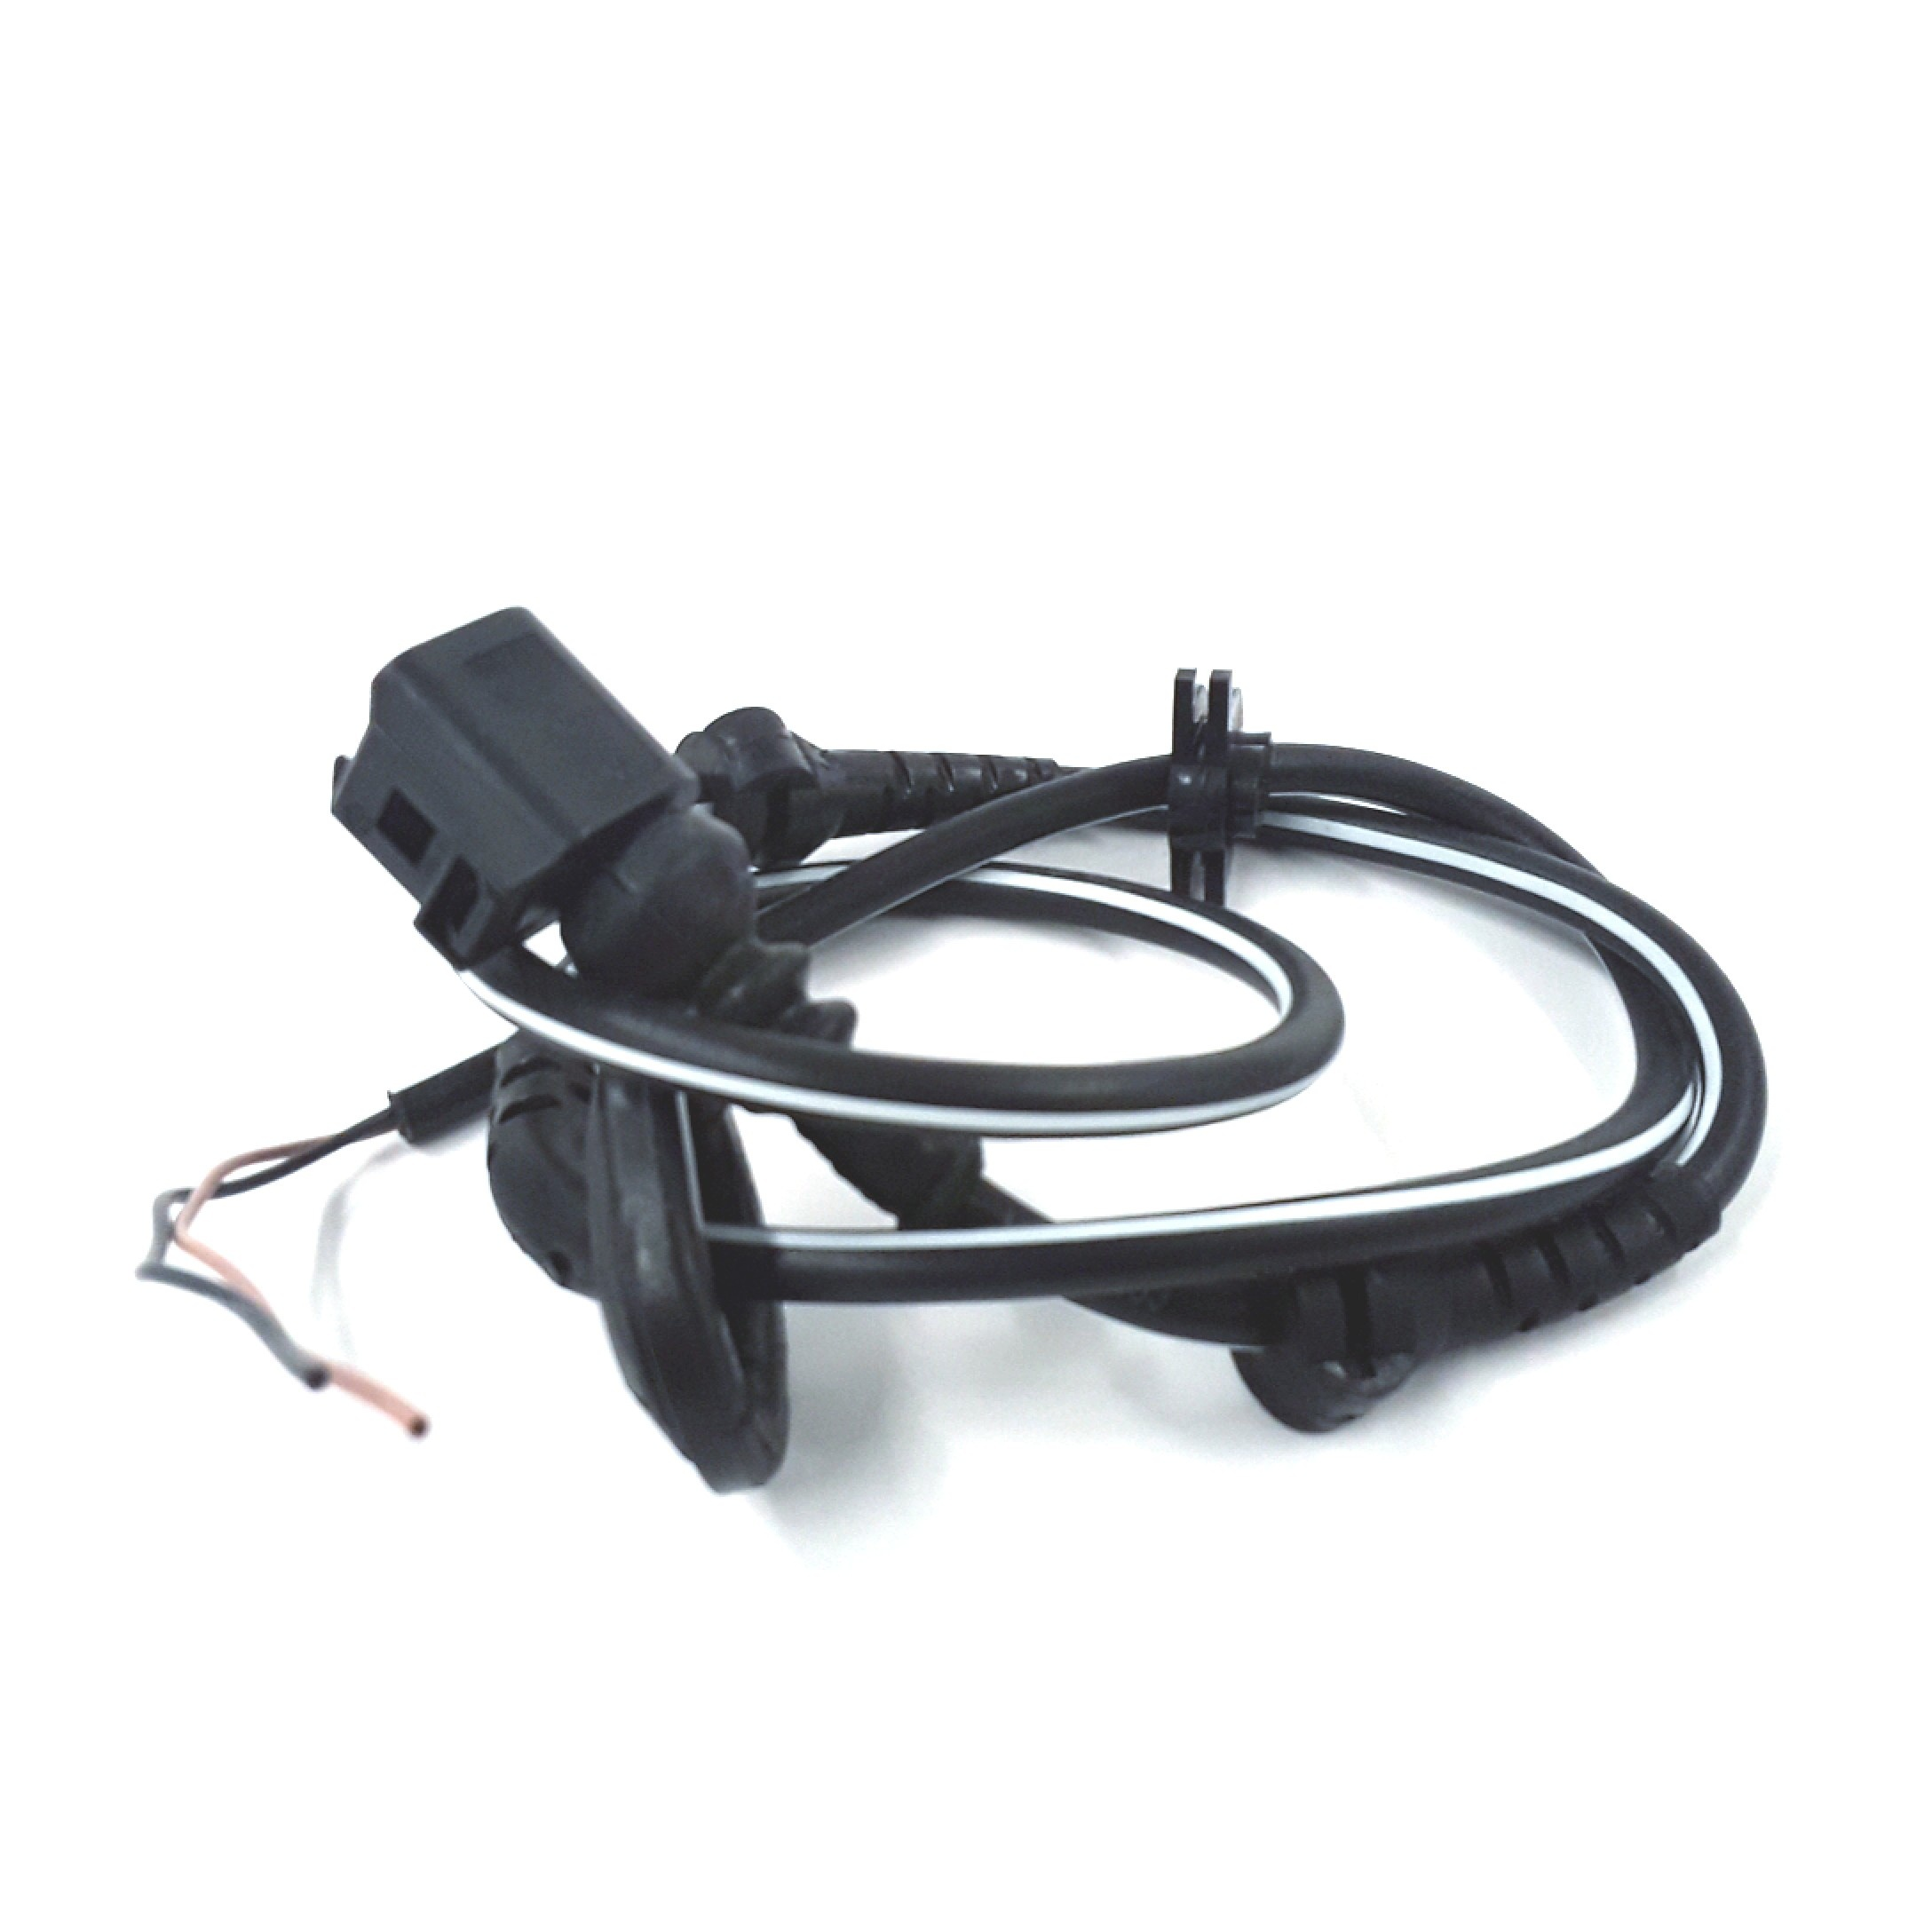 2013 Volkswagen Beetle Convertible Abs Wheel Speed Sensor